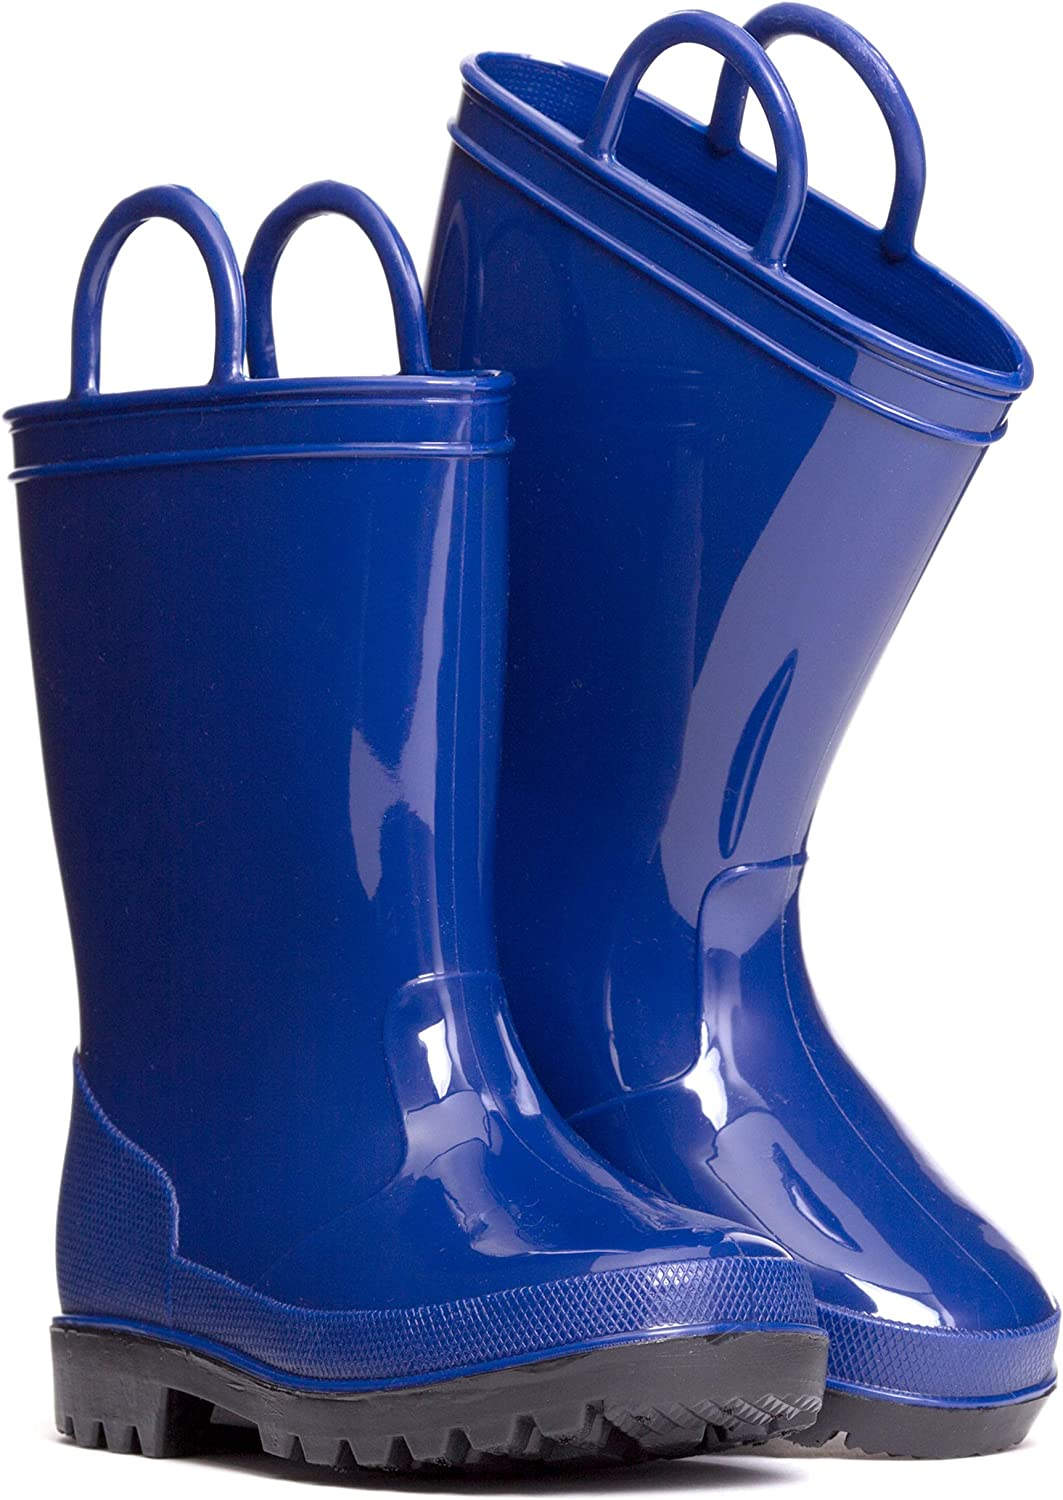 Boys ZOOGS Kids Waterproof Rain Boots for Girls and Toddlers